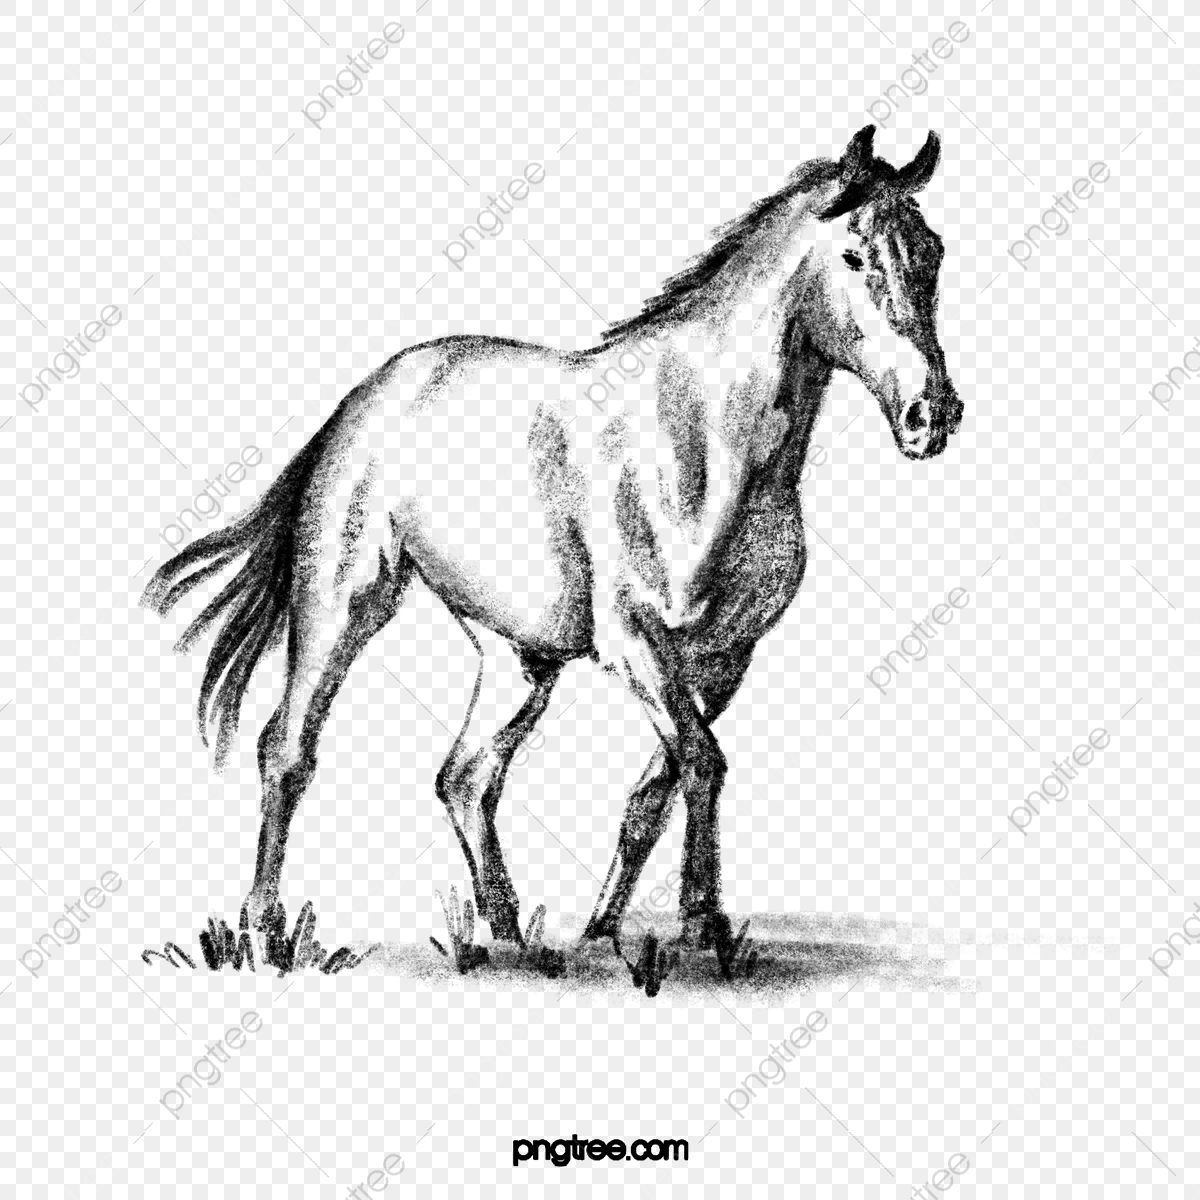 Black Hand Painted Wild Horse Running On The Grass Horse Black And White Black Hand Painted Png Transparent Clipart Image And Psd File For Free Download